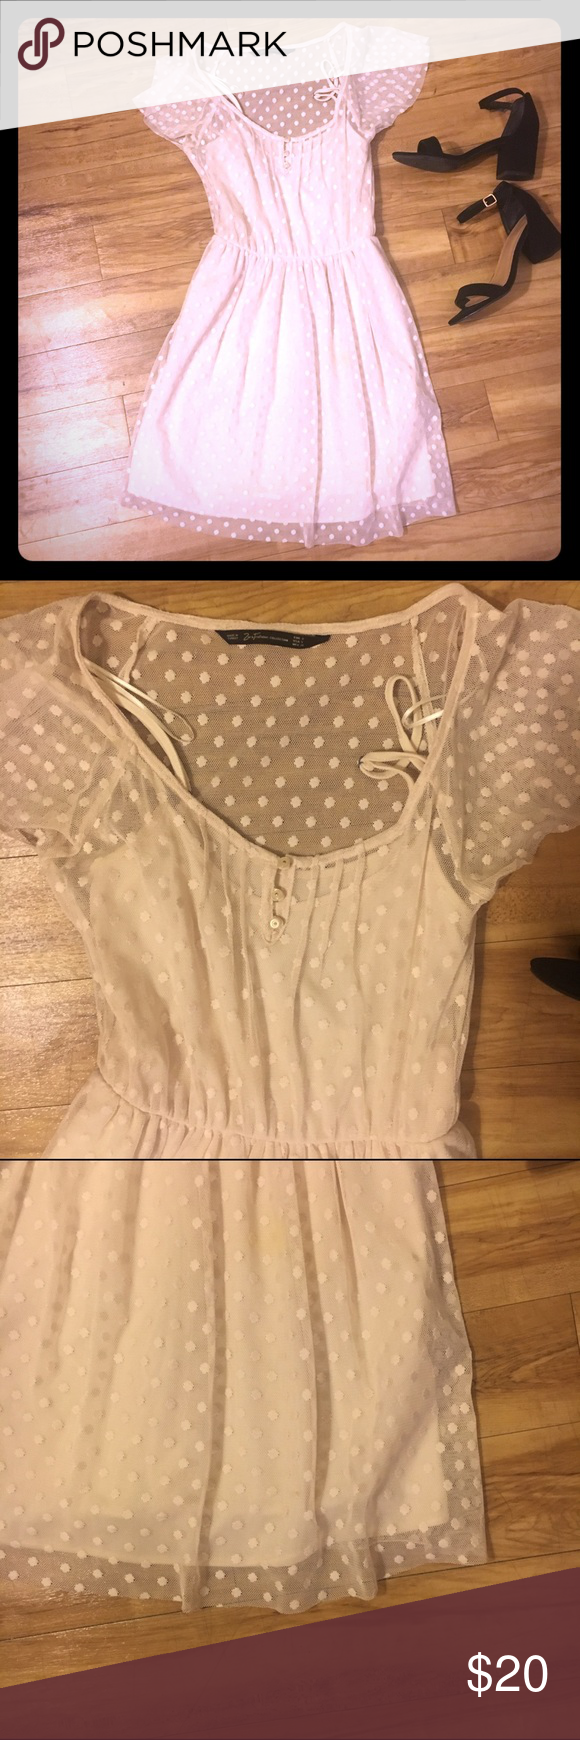 Zara Trafaluc Collection Dress Cream polka dot dress, worn once and in perfect condition. Sheer with cream lining. Zara Dresses Midi